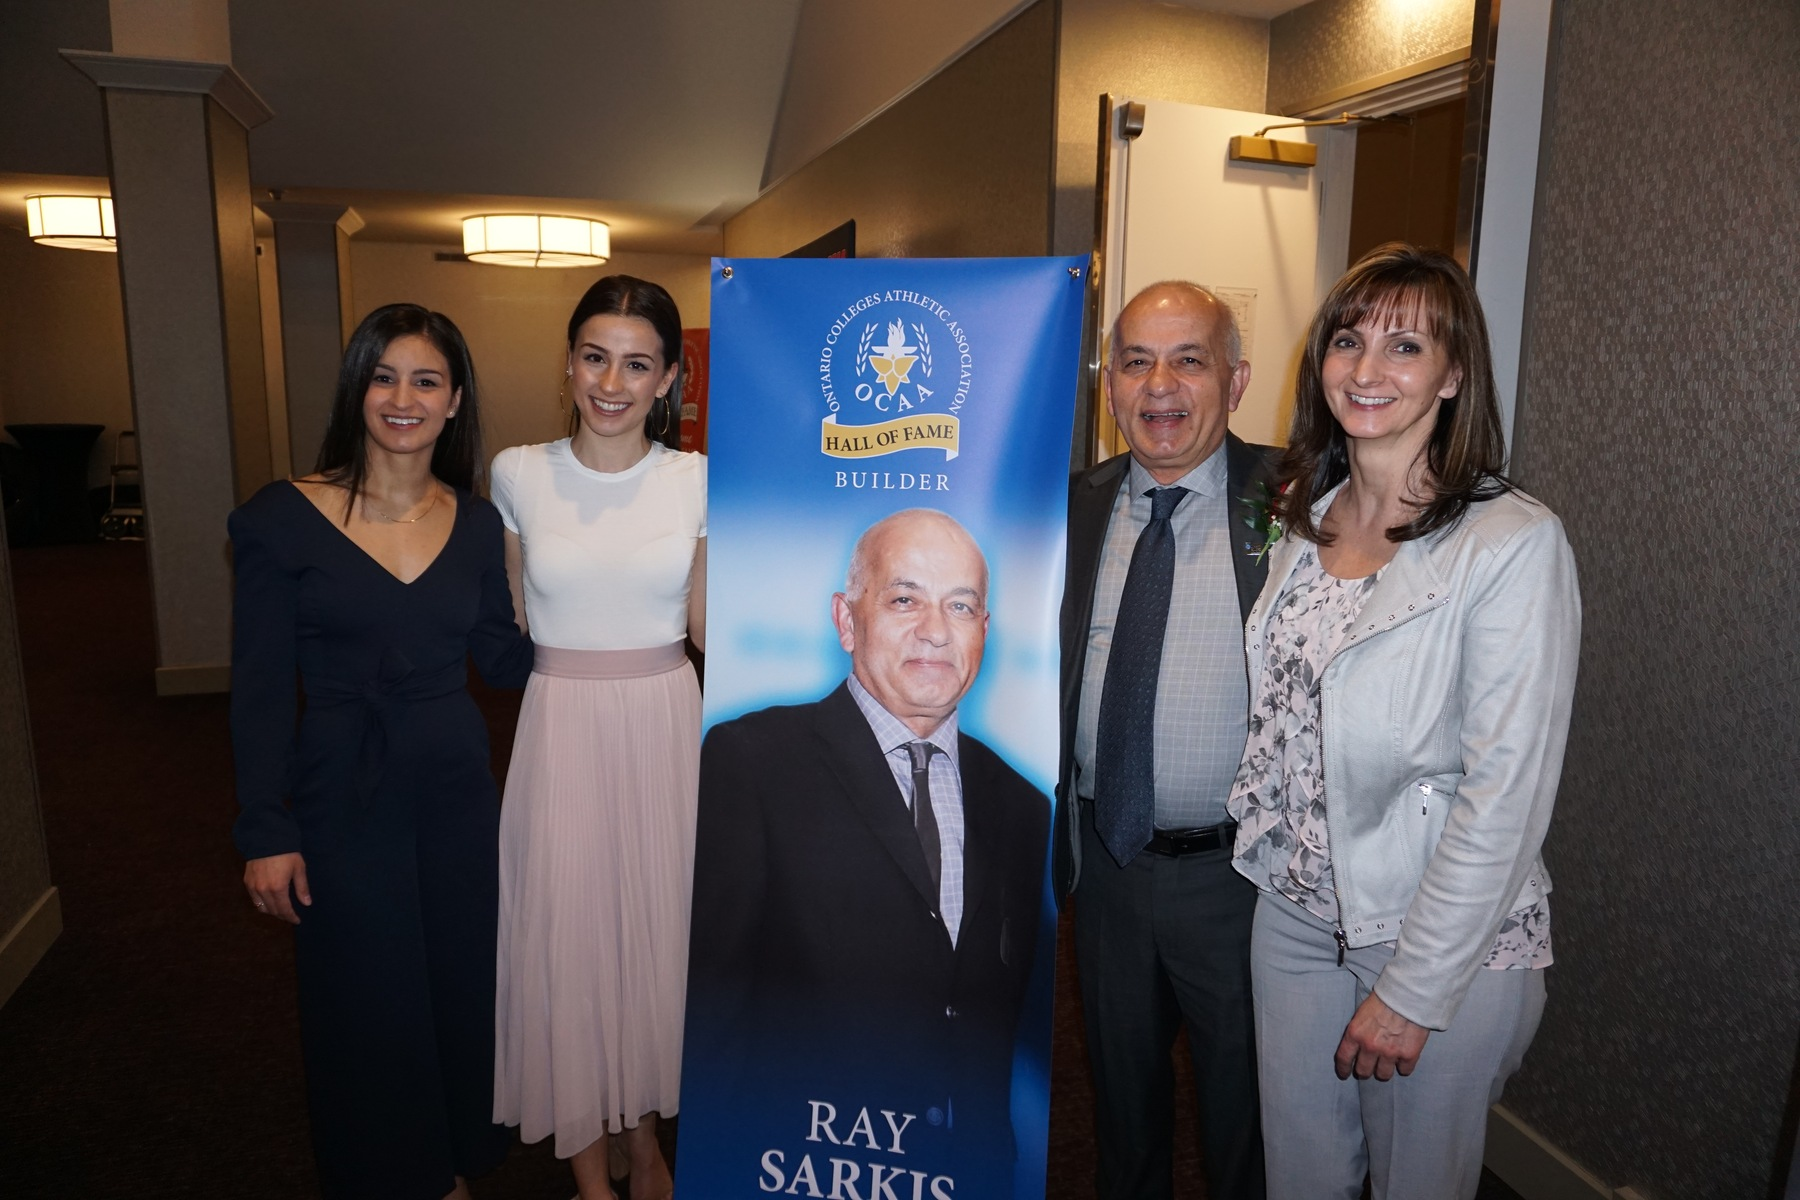 OCAA Hall of Fame inductee Ray Sarkis with his wife, Marilyn, and daughters, Ava and Hillary.